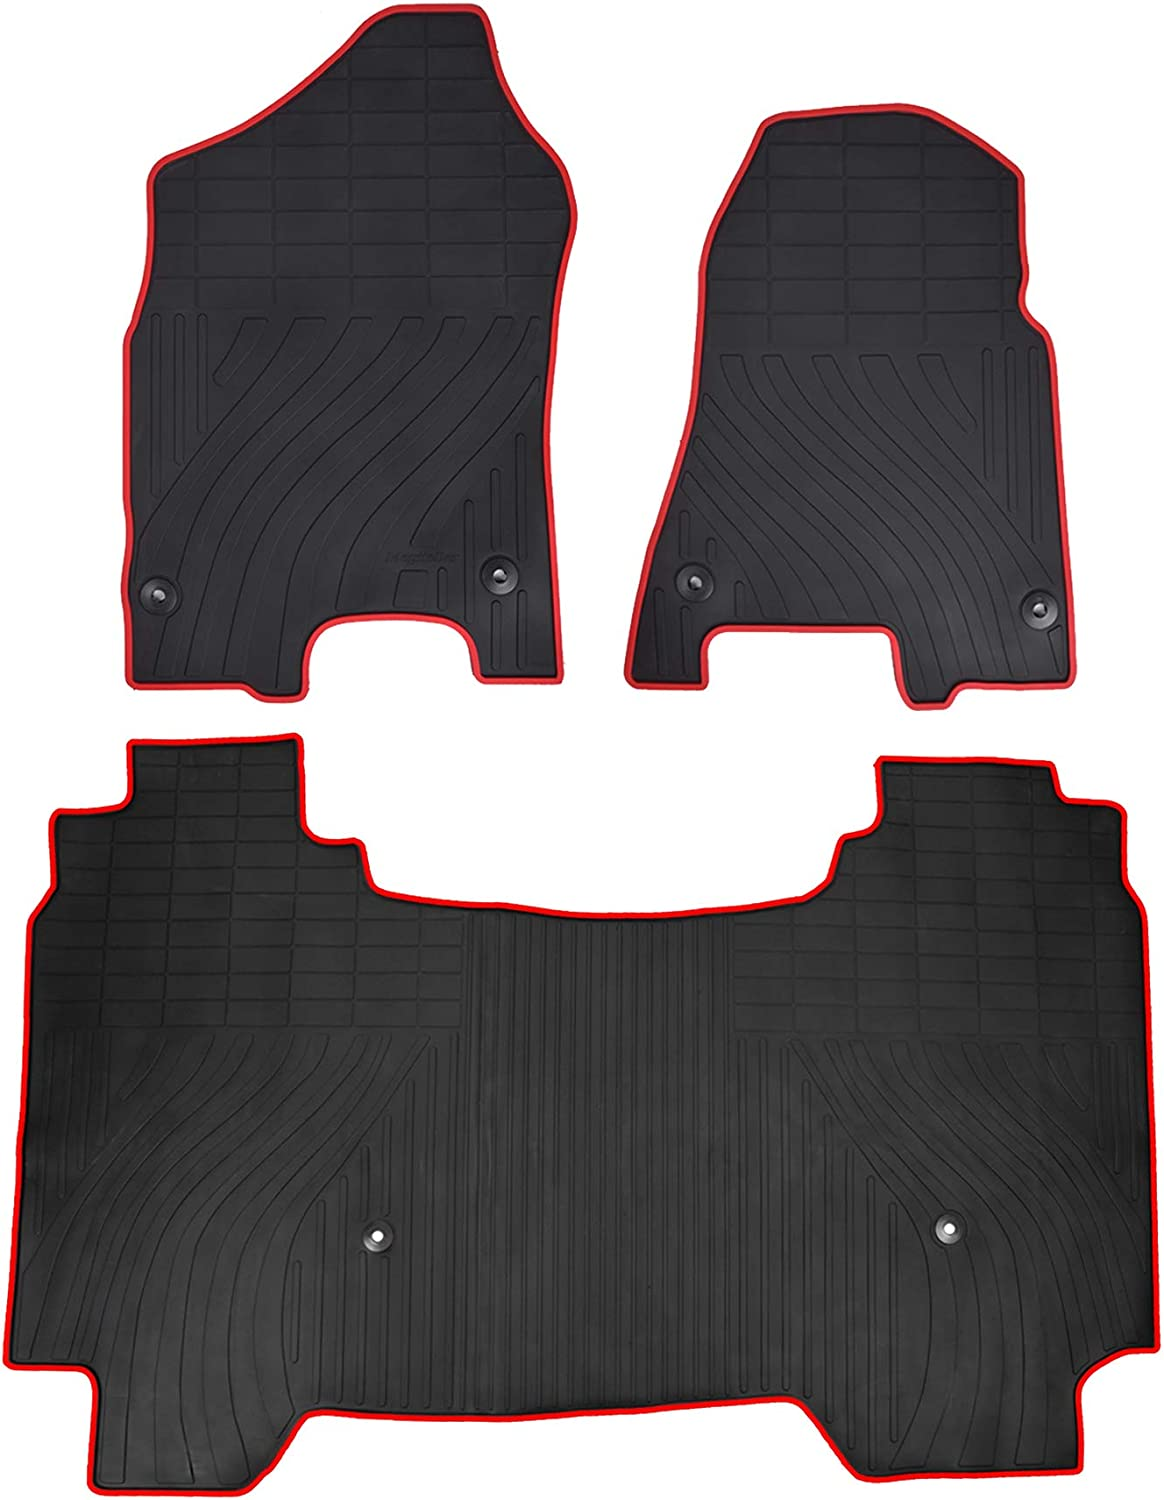 All Weather NOT for Storage Under Rear Seat Floor Liners Front and Rear Row Set Red Megiteller Car Floor Mats Custom Fit for Dodge Ram 1500 Crew Cab 2019 2020 Odorless Washable Heavy Duty Rubber